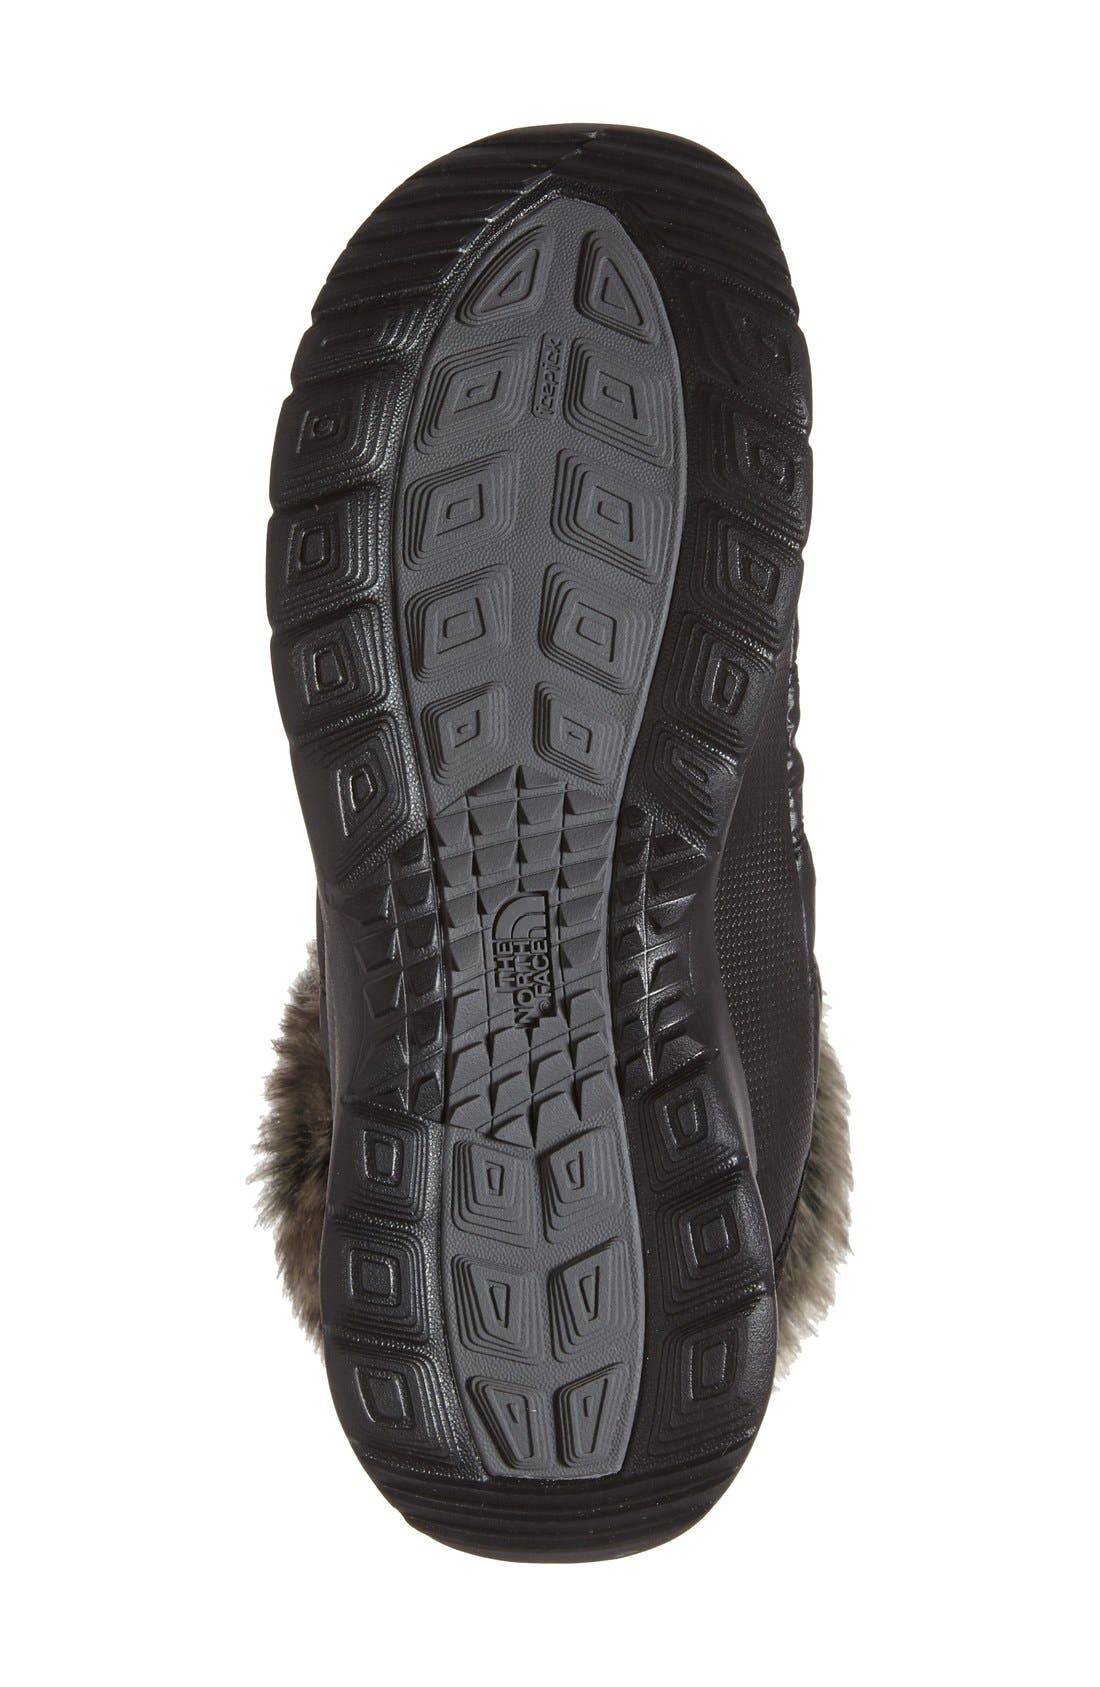 Microbaffle Waterproof ThermoBall<sup>®</sup> Insulated Winter Boot,                             Alternate thumbnail 4, color,                             Black/ Smoked Pearl Grey